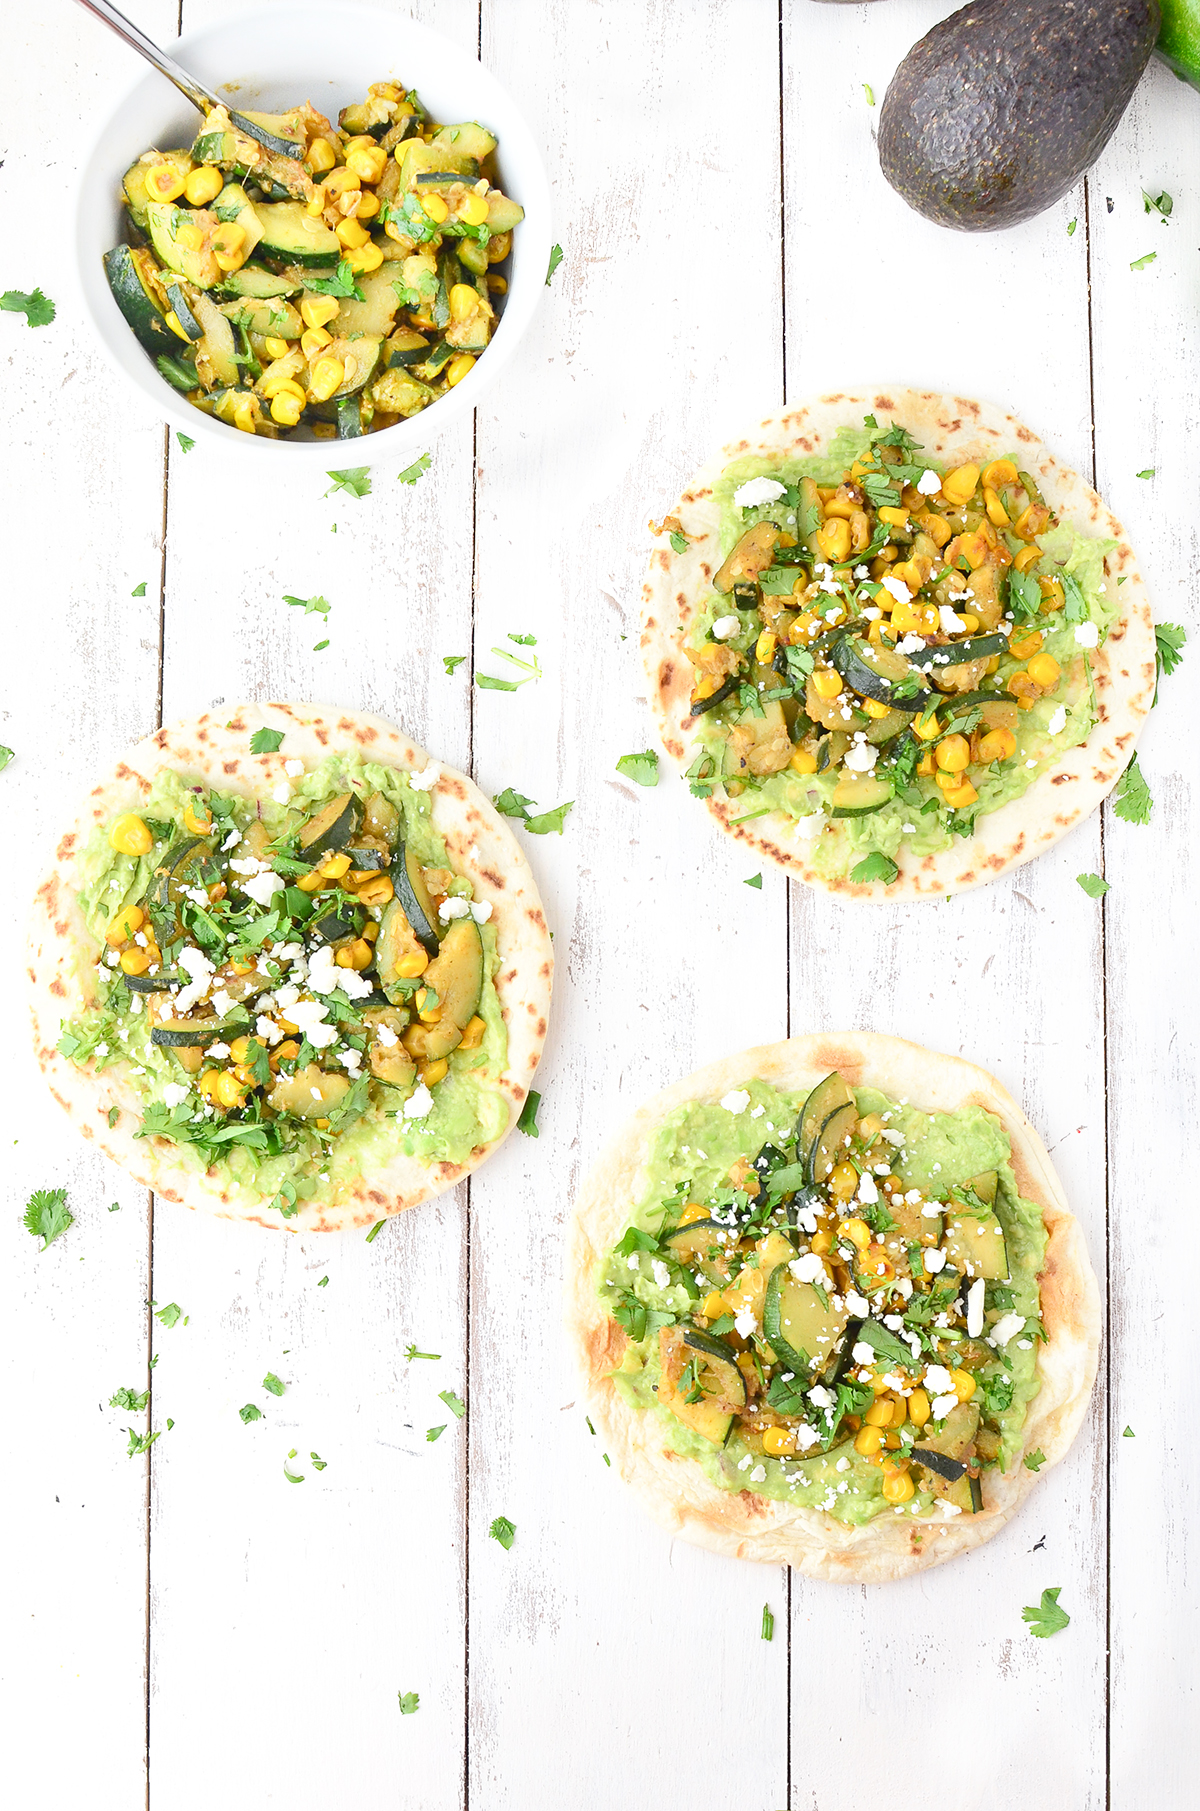 zucchini and corn vegan tacos